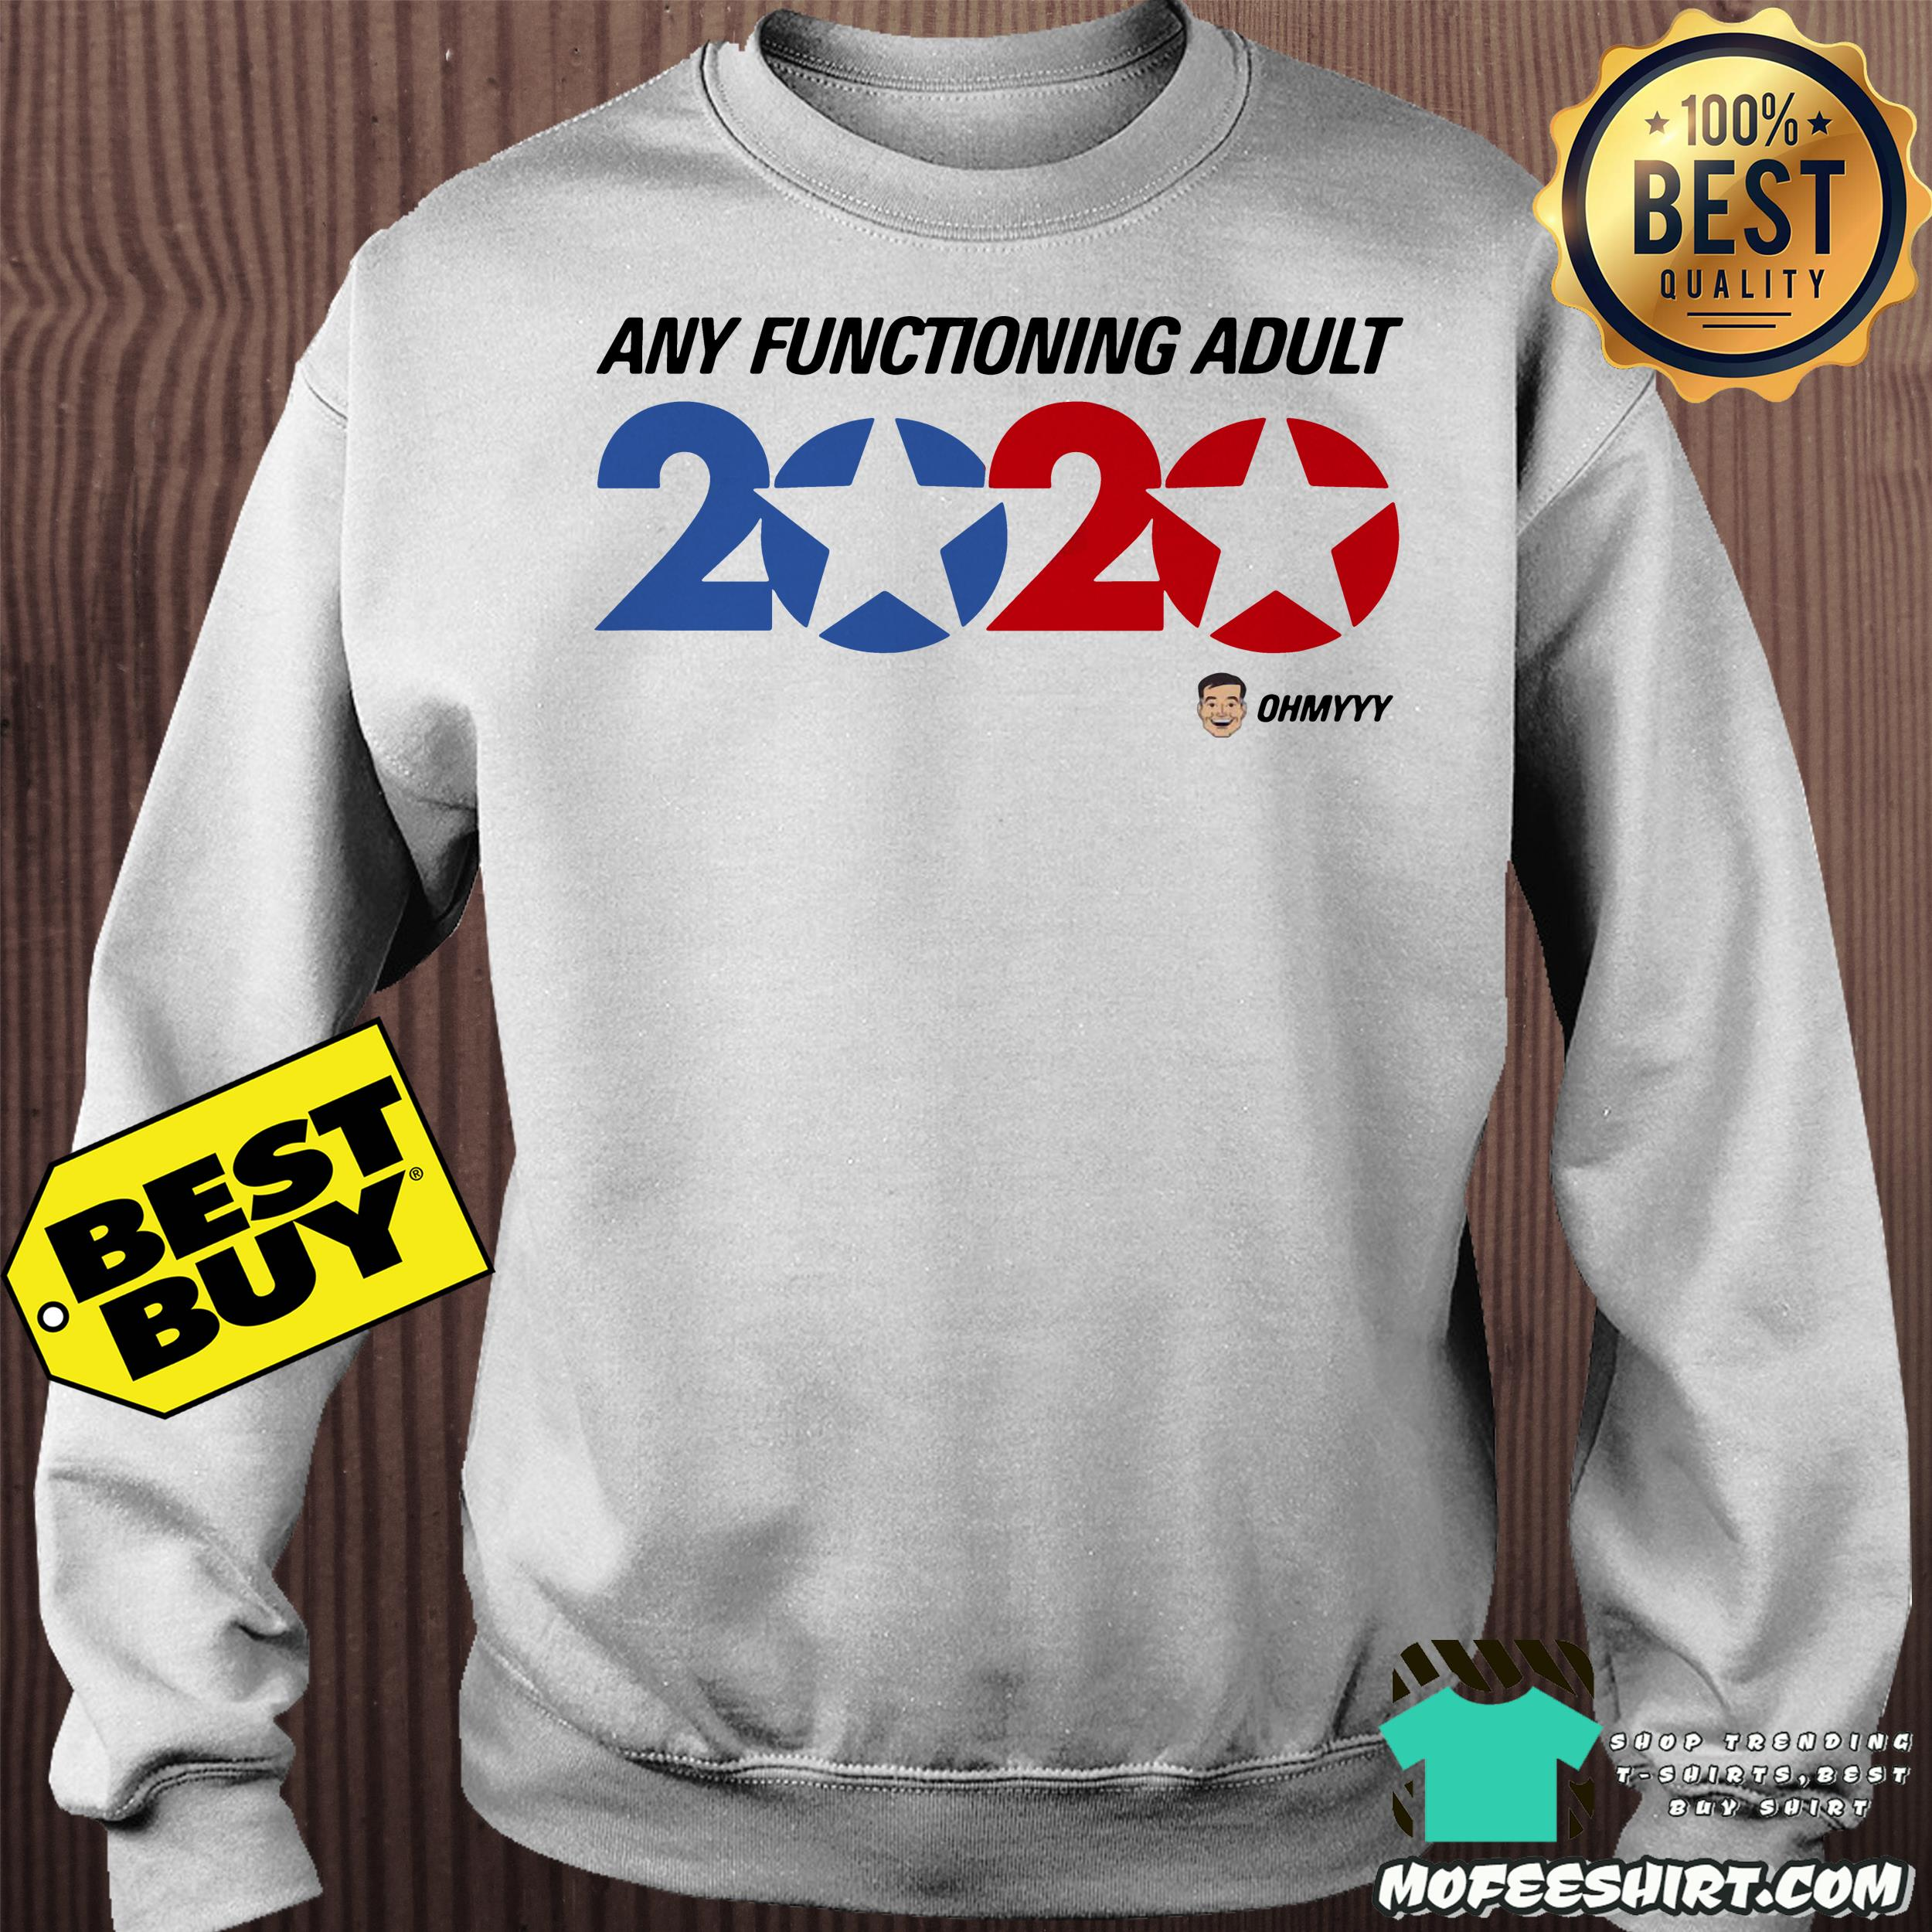 america trump 2020 george takei any functioning adult sweatshirt - America Trump 2020 George Takei Any functioning adult shirt